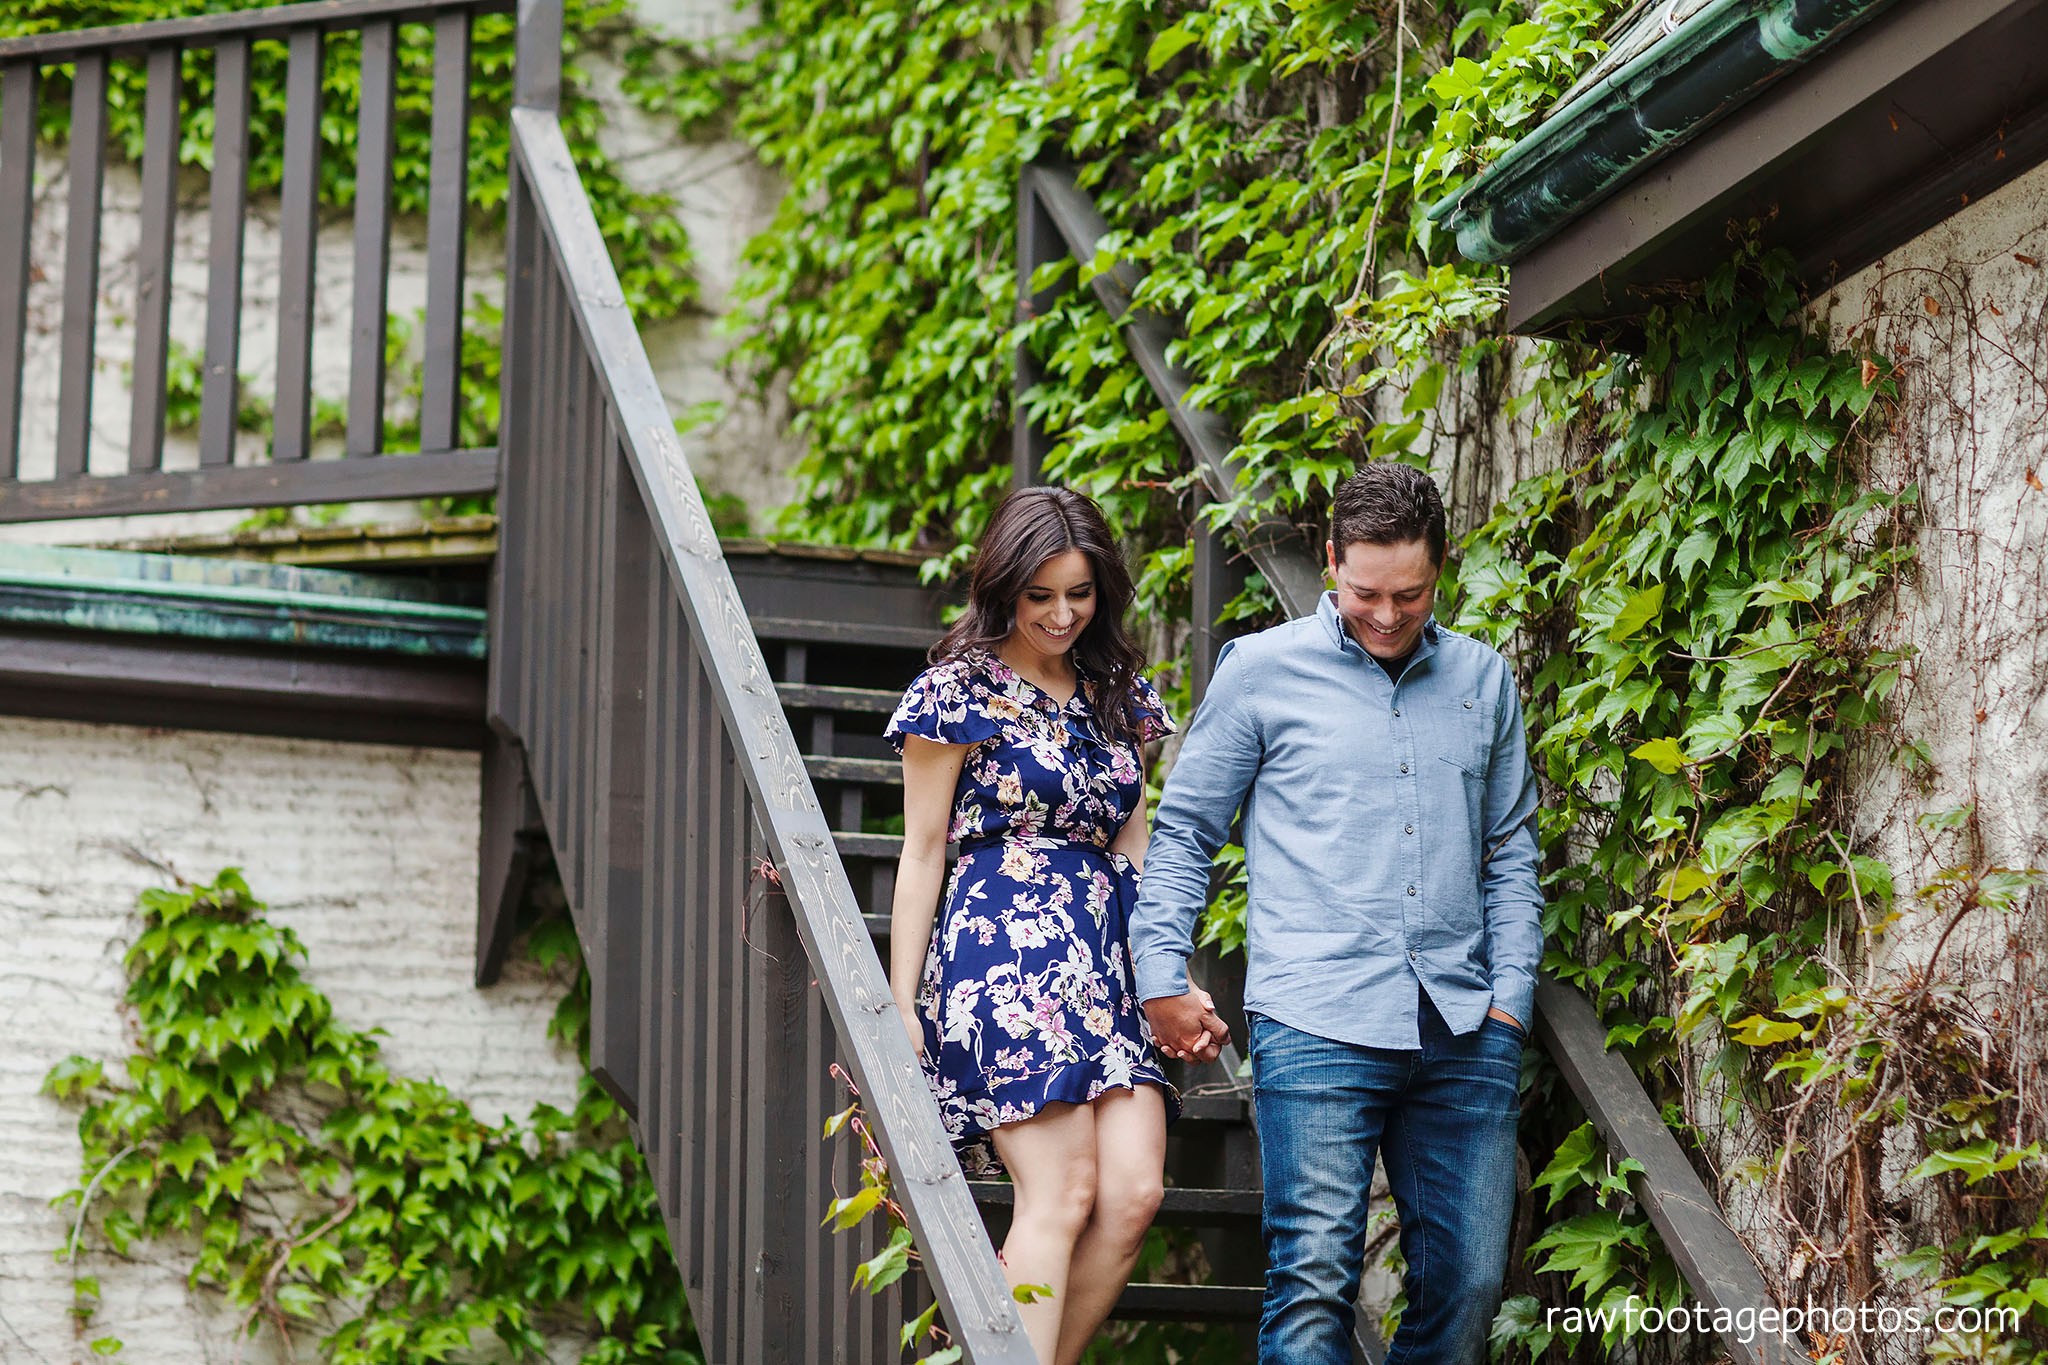 london_ontario_wedding_photographer-raw_footage_photography-engagement_session-campus_session-kings_college-uwo-spring_blooms011.jpg